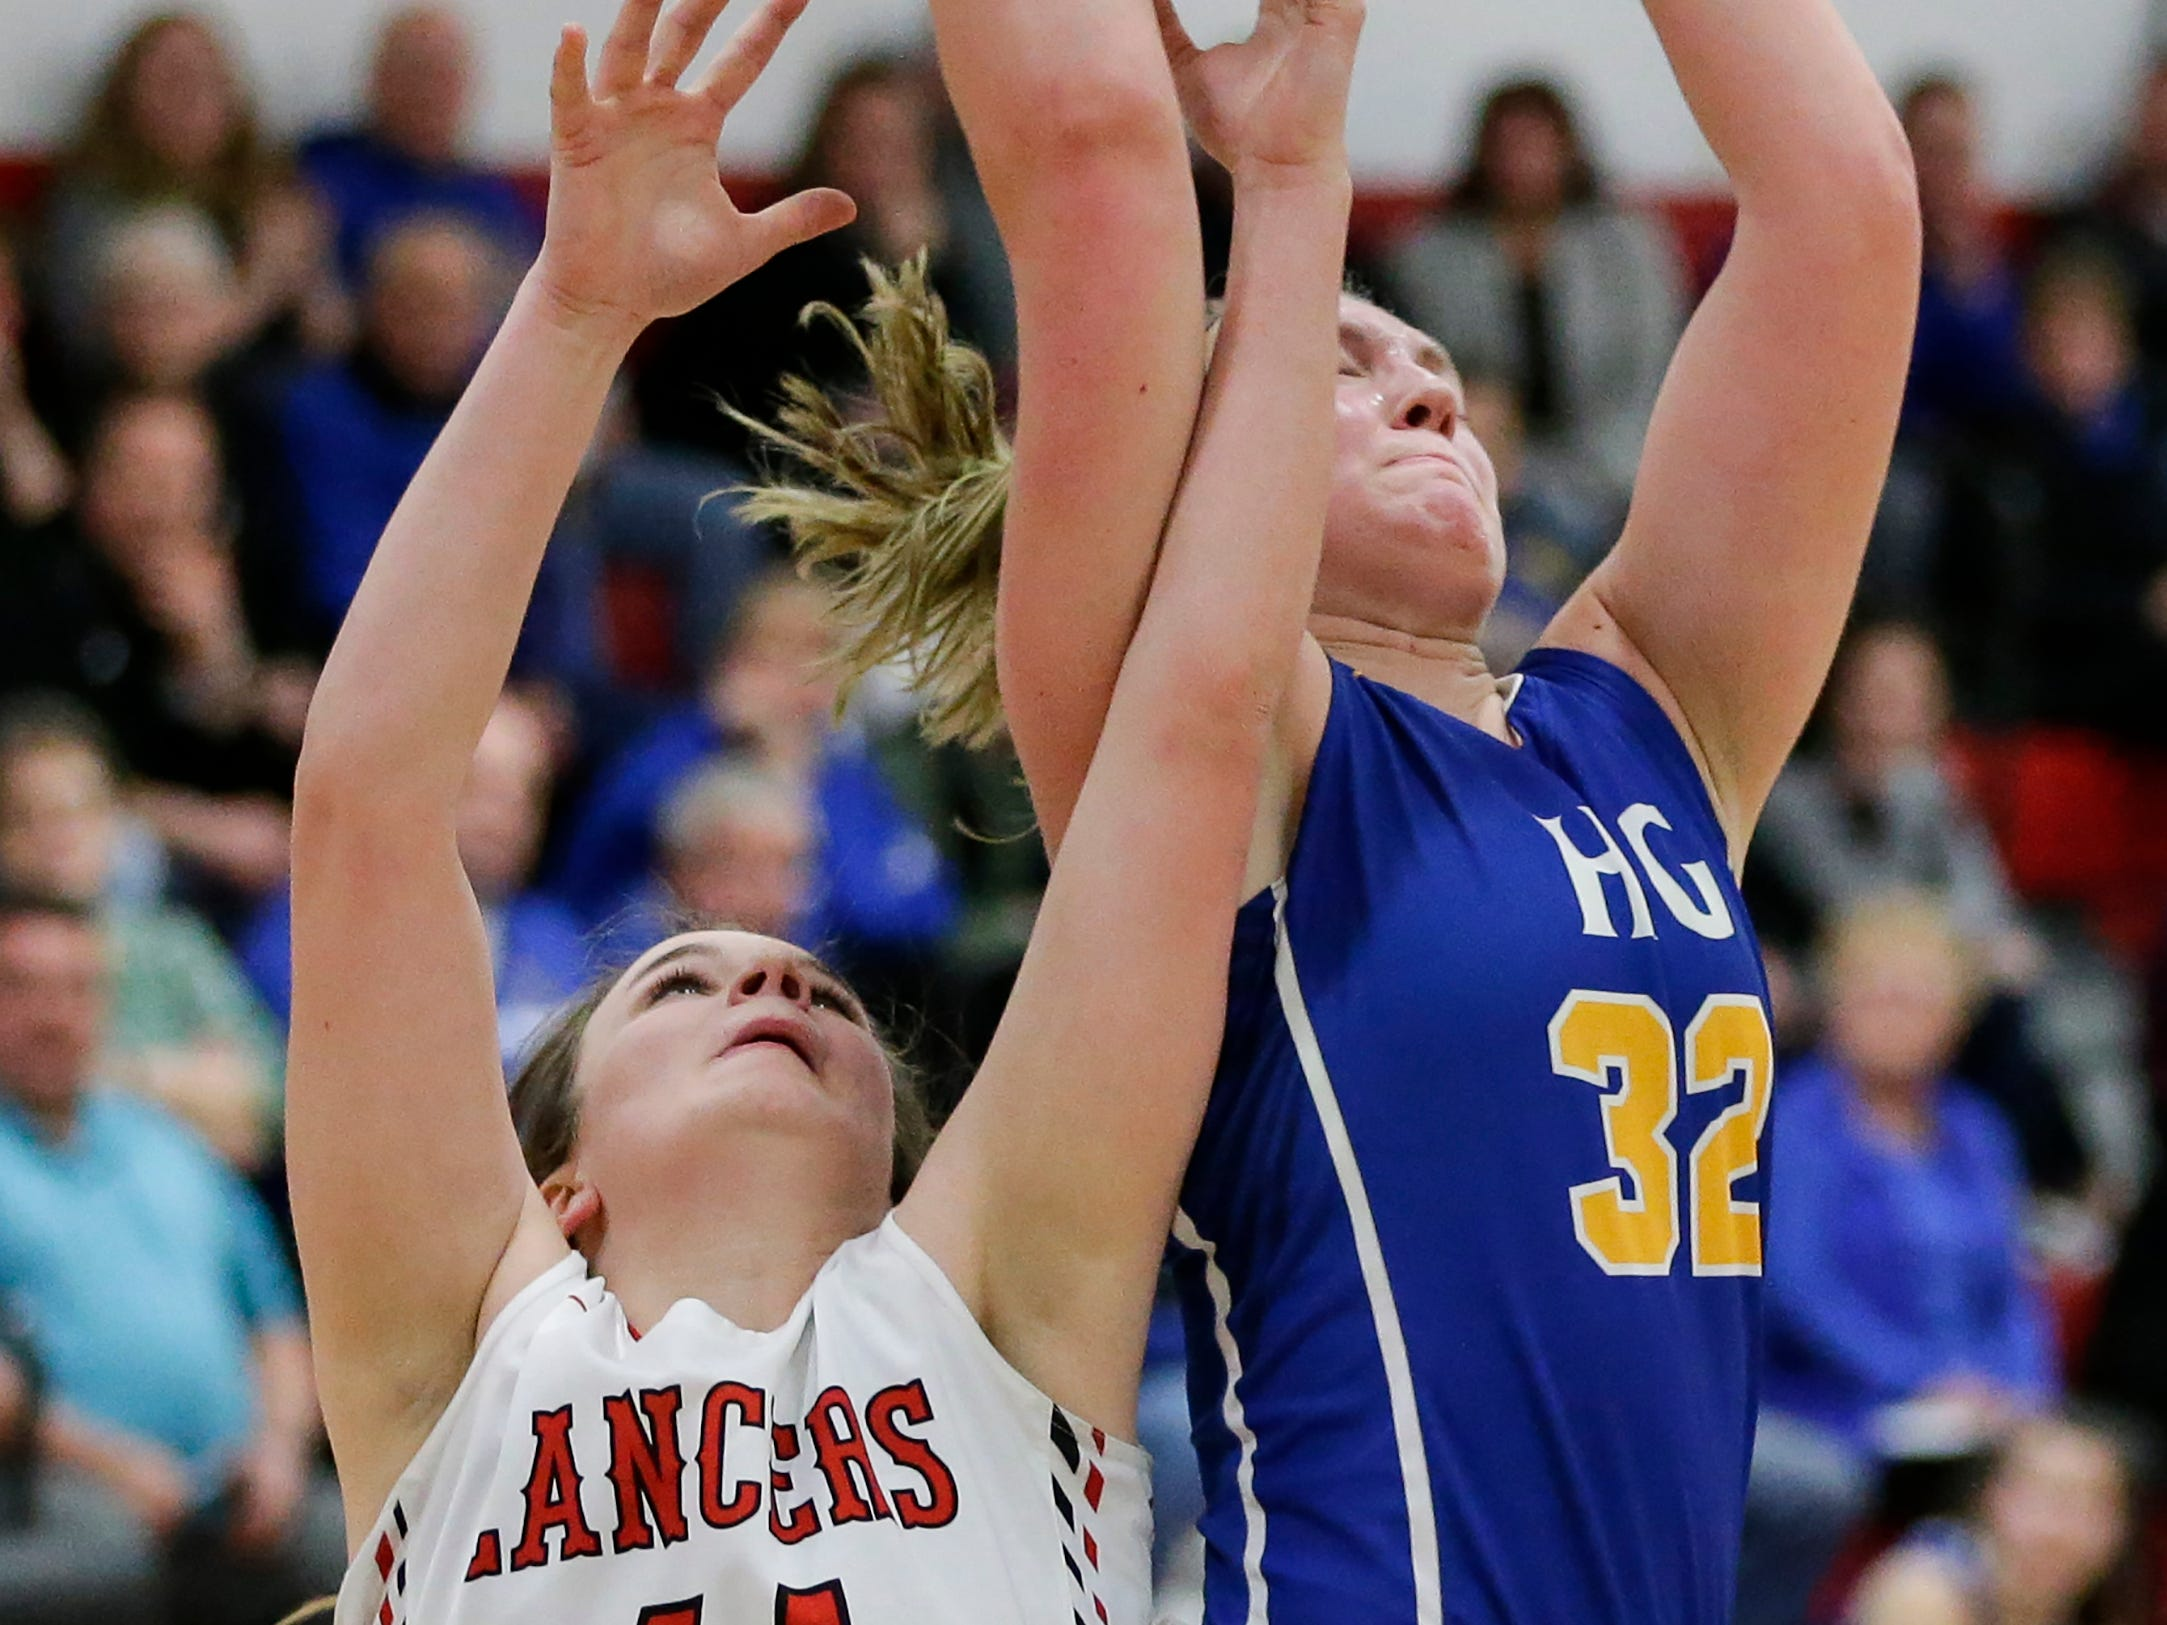 Howards Grove's Madalynn Near rebounds over Manitowoc Lutheran's Katelyn Fels at Manitowoc Lutheran High School Tuesday, December 18, 2018, in Manitowoc, Wis. Joshua Clark/USA TODAY NETWORK-Wisconsin